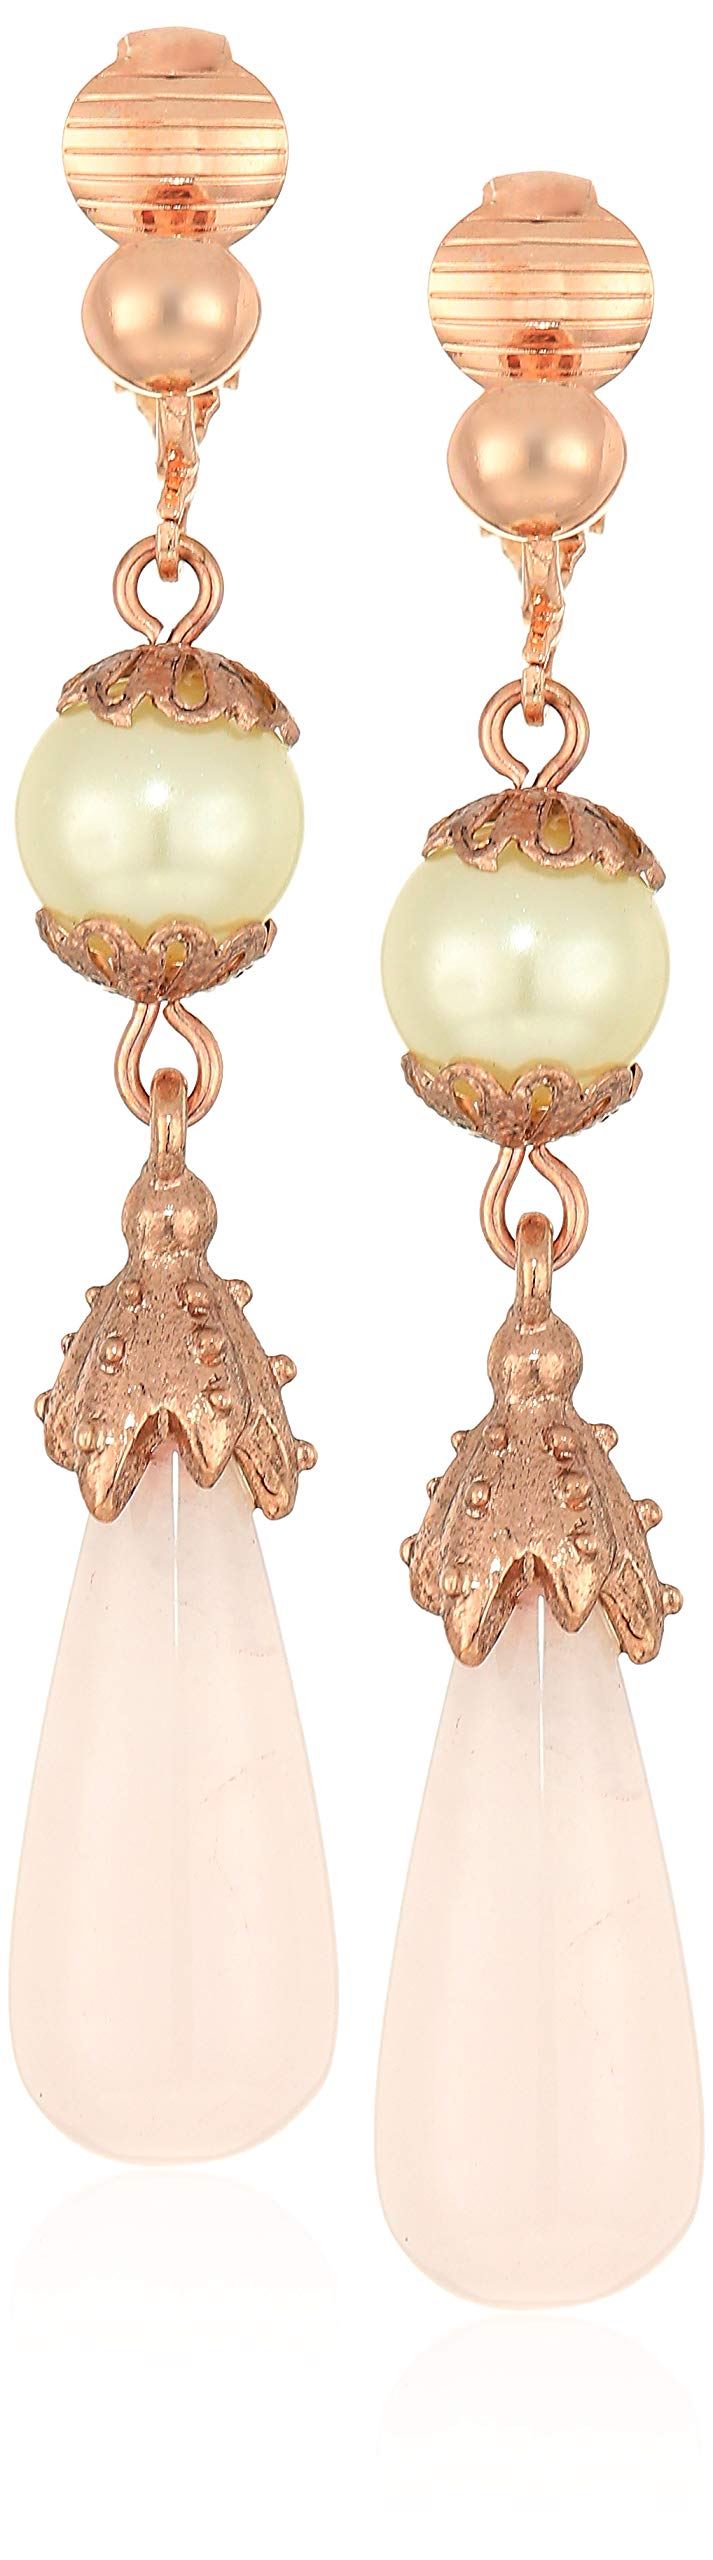 1928 Jewelry Women's Rose Gold Simulated Pearl/Rose Quartz Clip Earrings, Pink, One Size